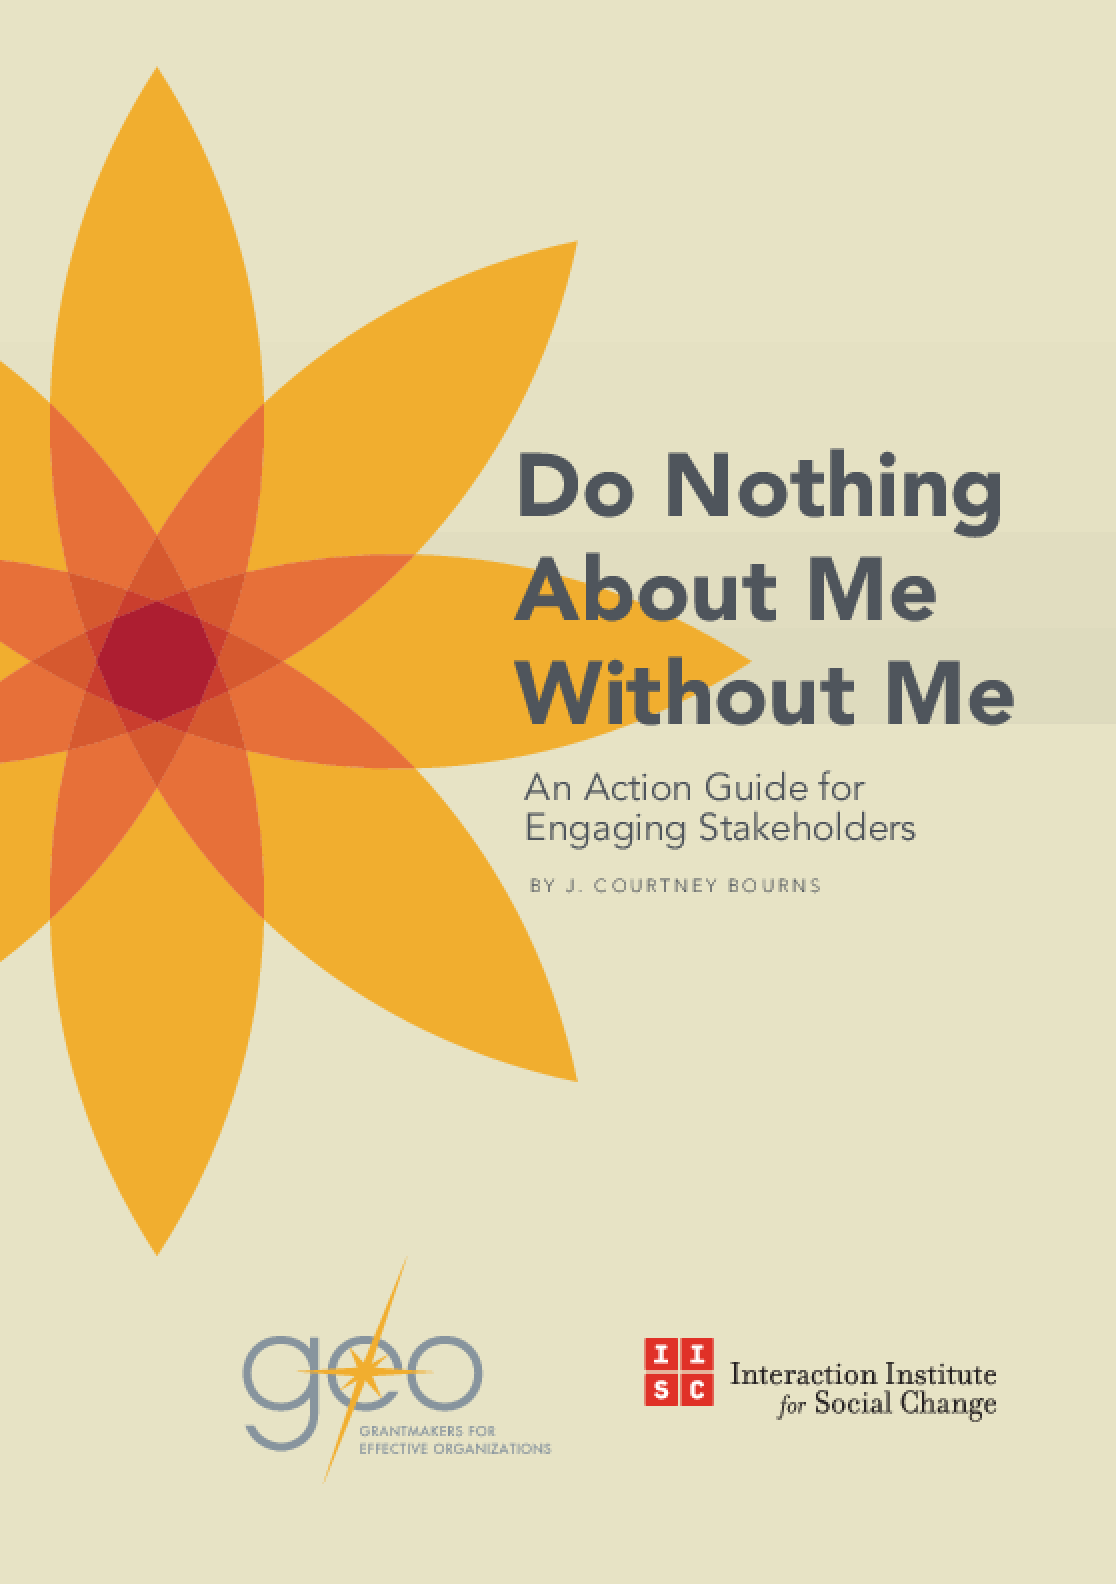 Do Nothing About Me Without Me: An Action Guide for Engaging Stakeholders